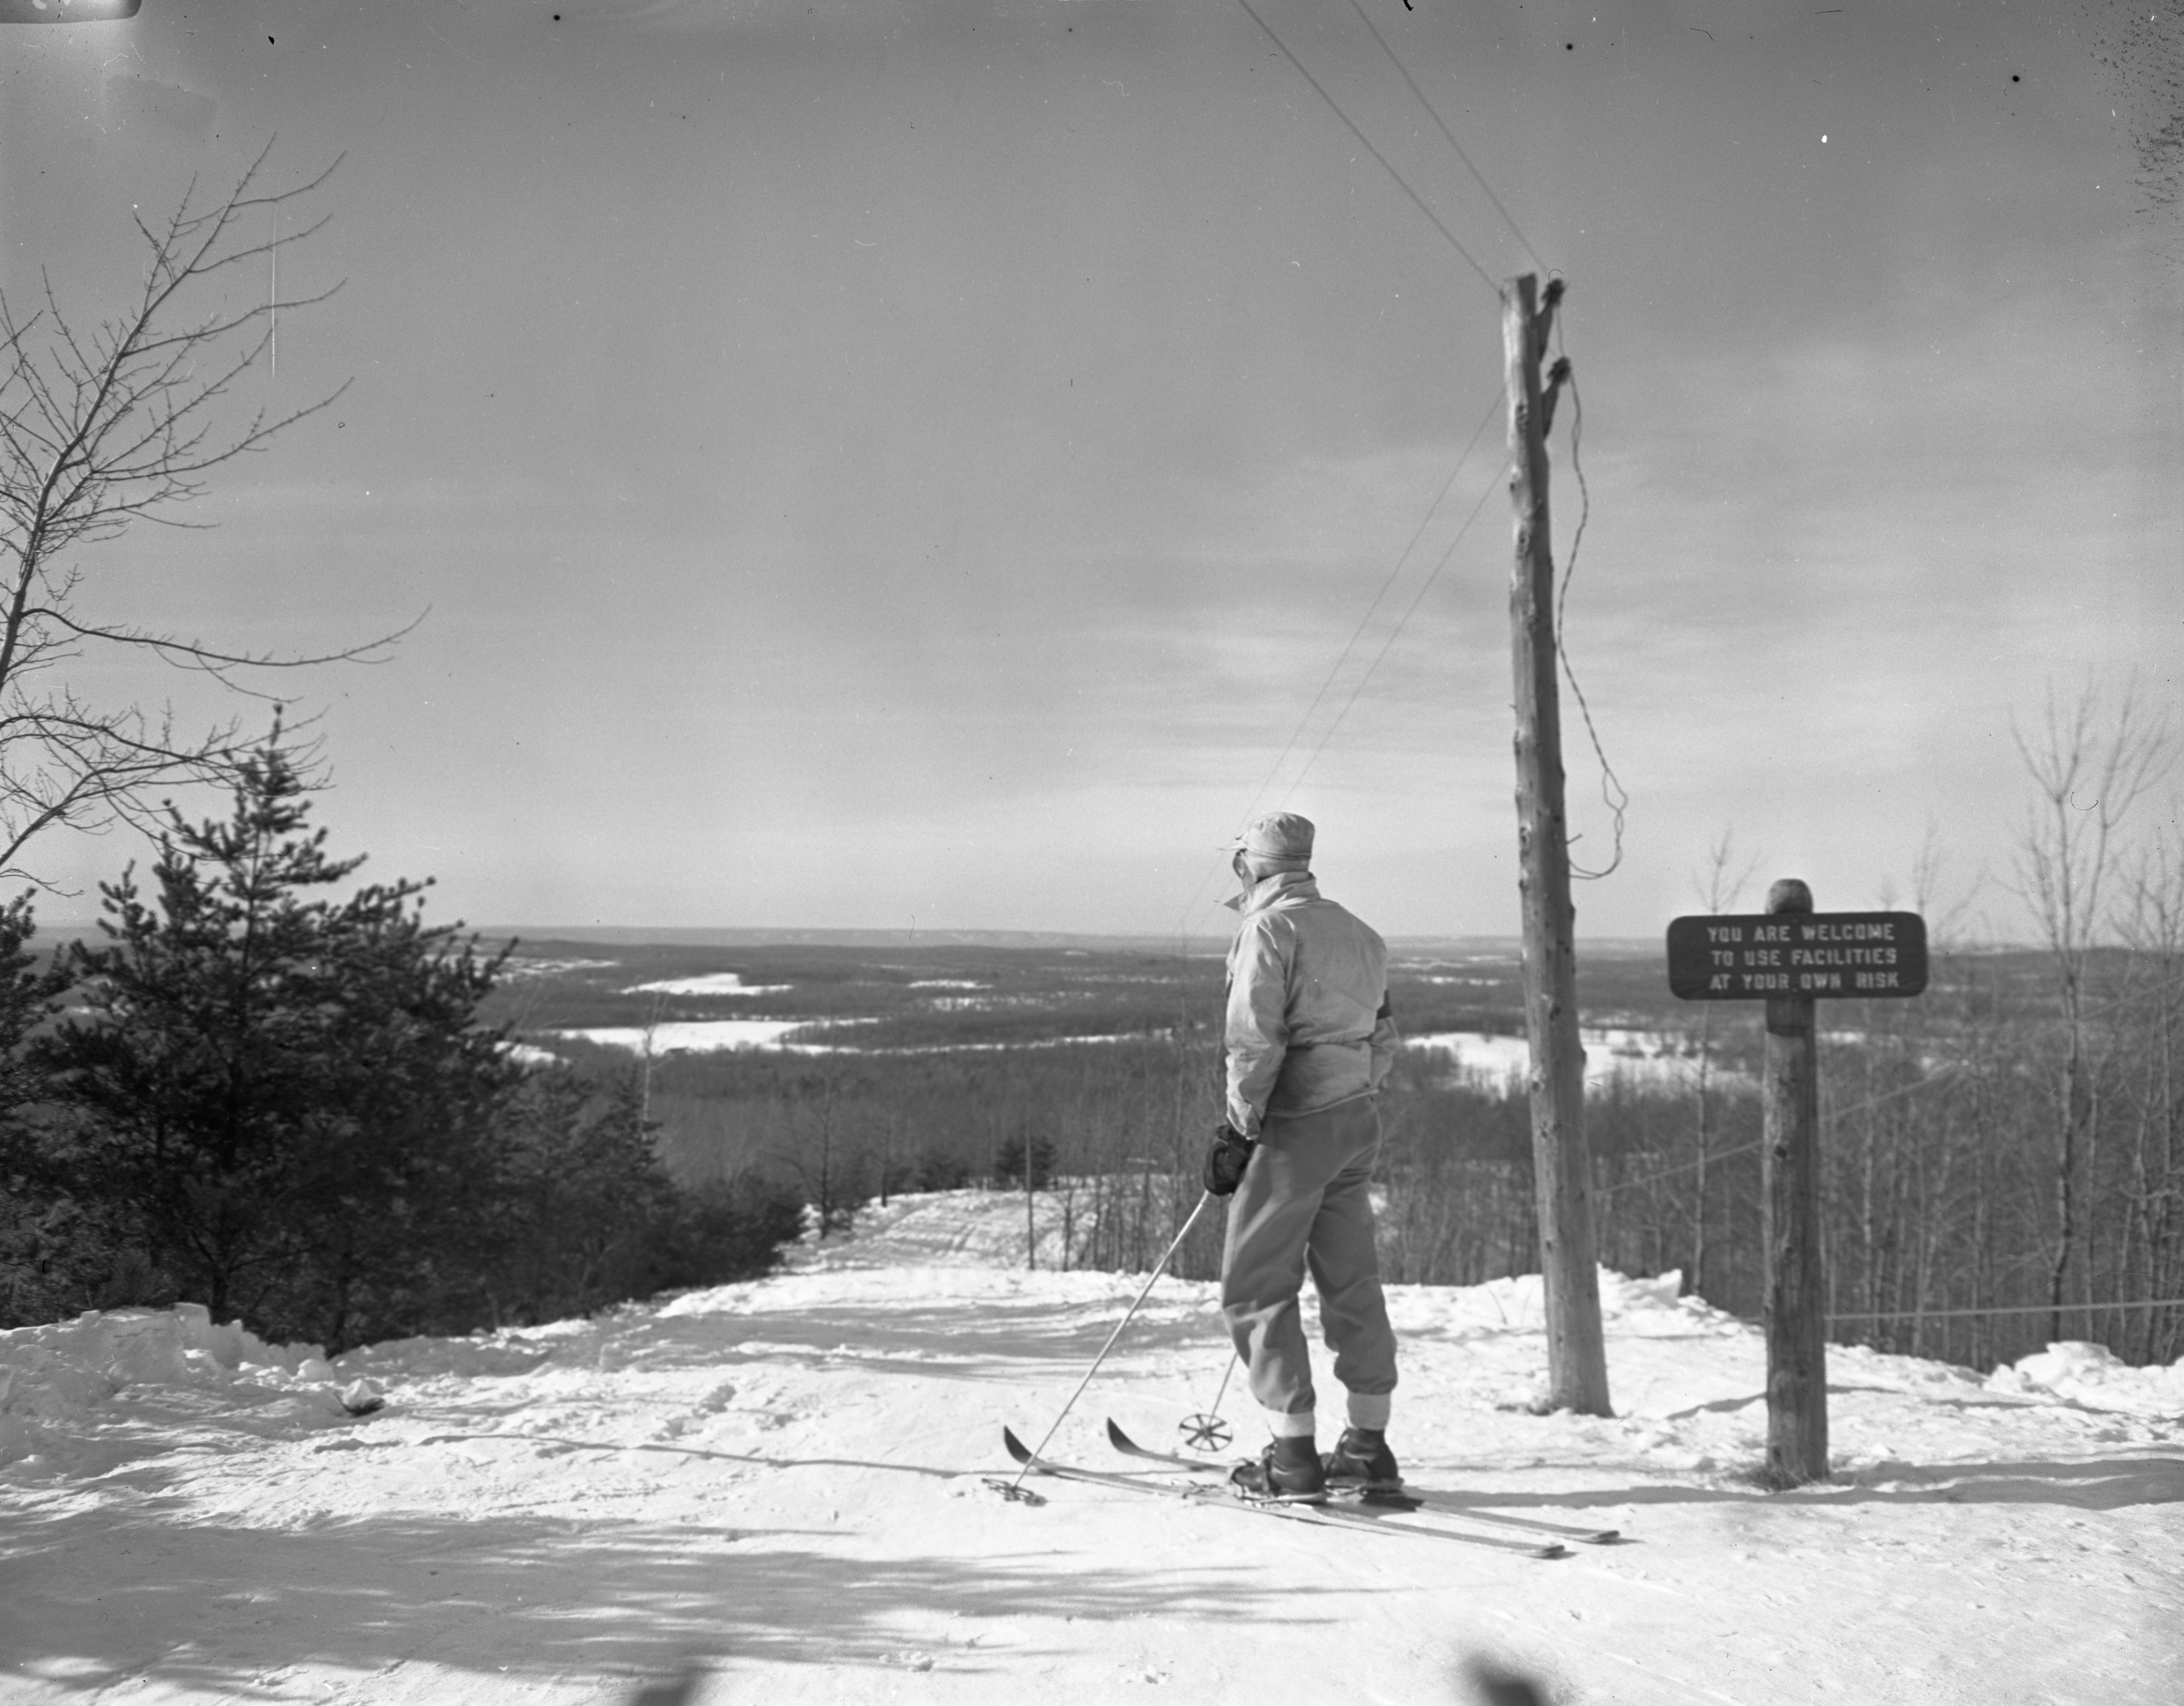 Skier Looks Down The Hill At Caberfae In Cadillac, February 1946 image